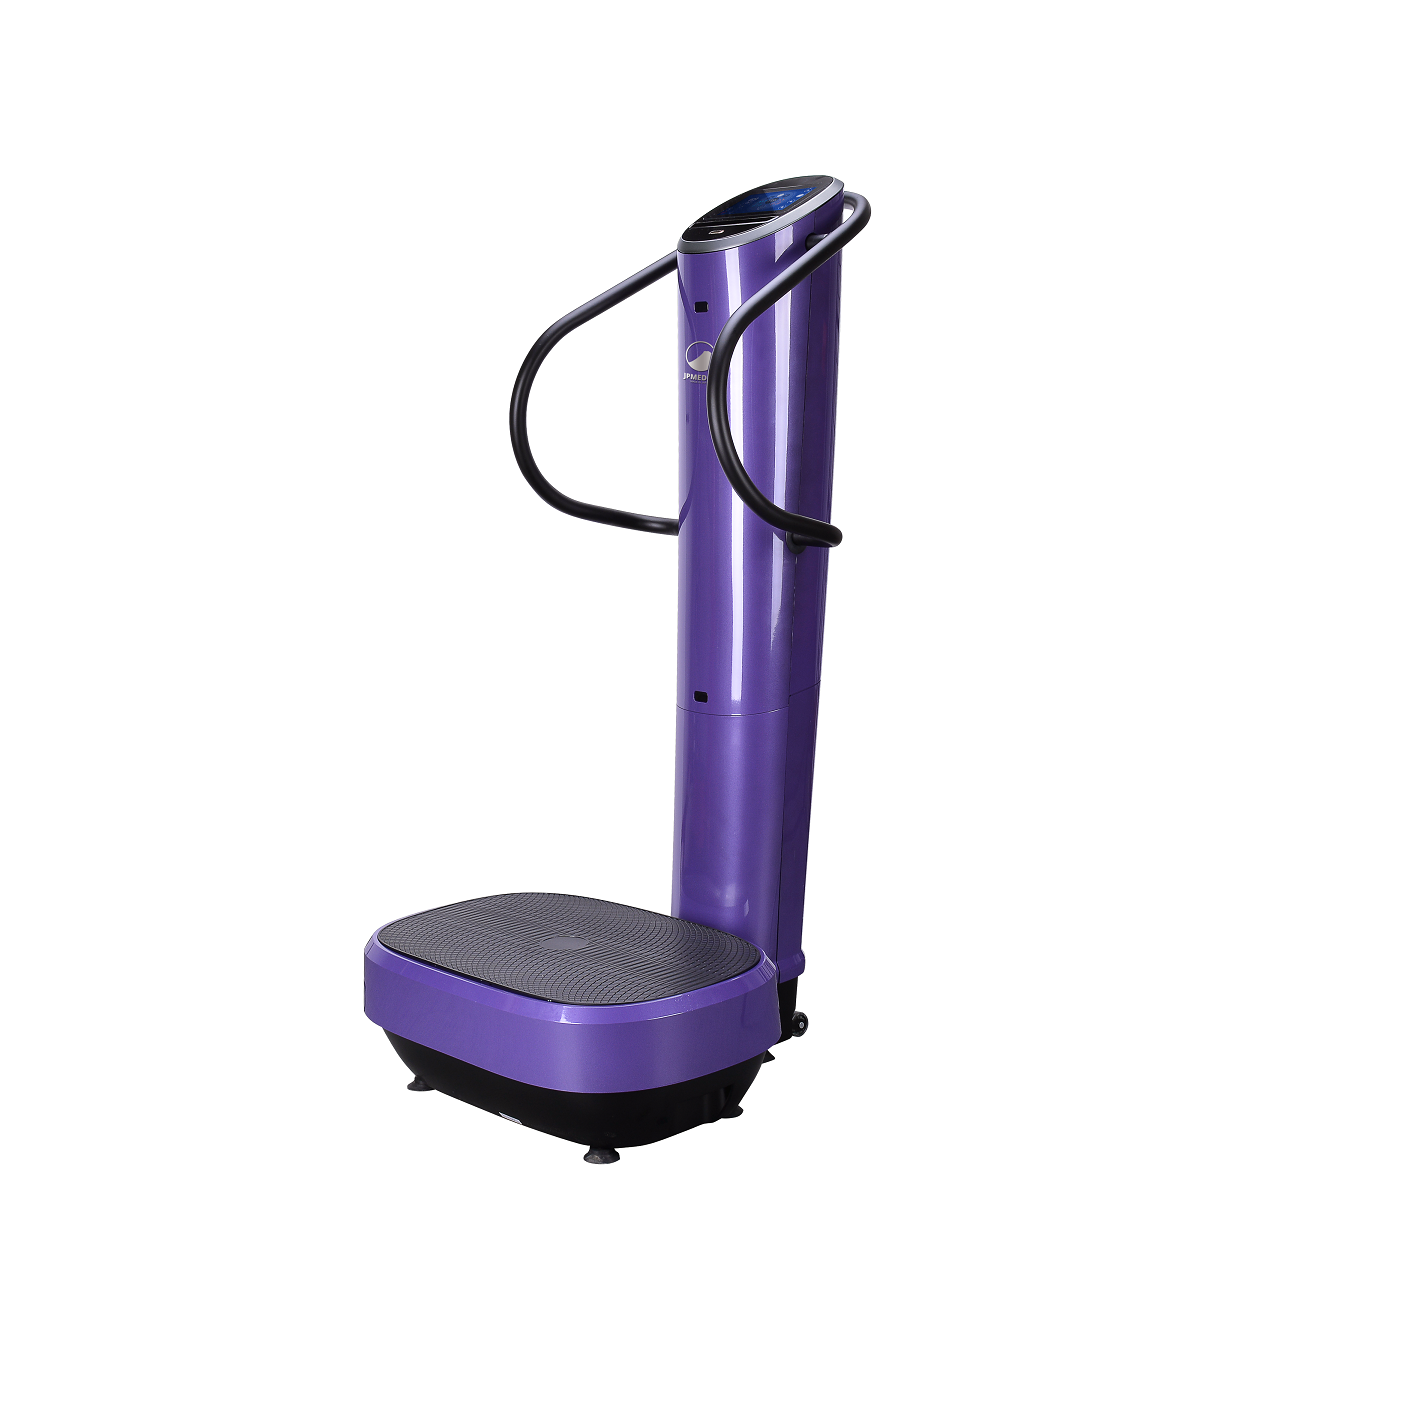 JPMedics Nami Sonic Vibration Machine